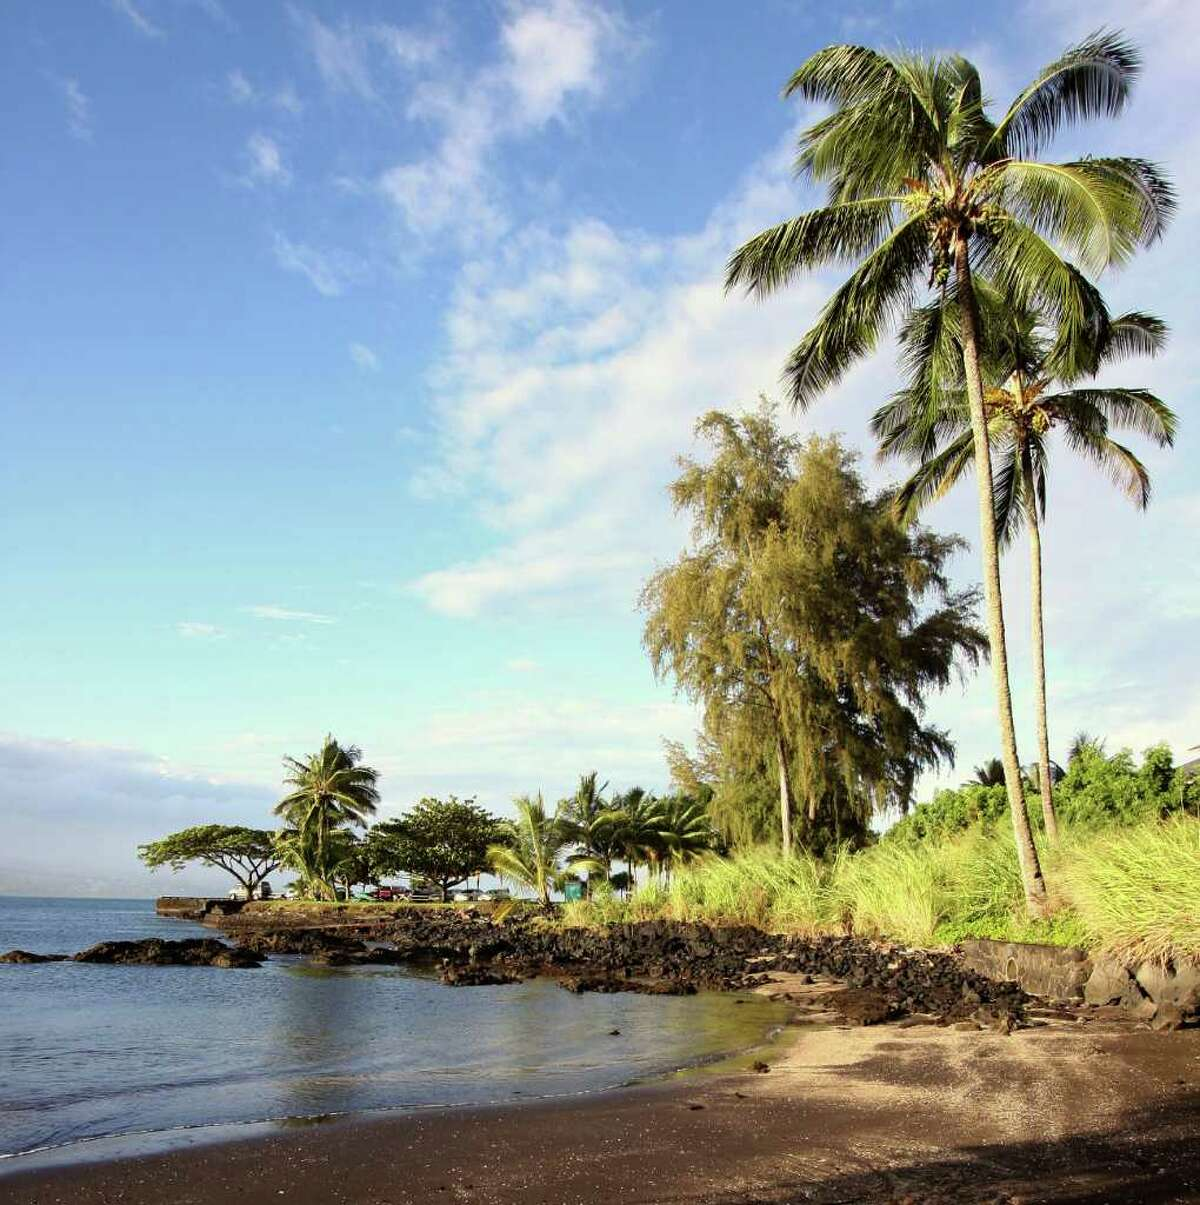 According to an unpublished Smithsonian Institution chart, the U.S. Exploring Expedition arrived in Hawaii in 1840 at this small, unmarked beach.